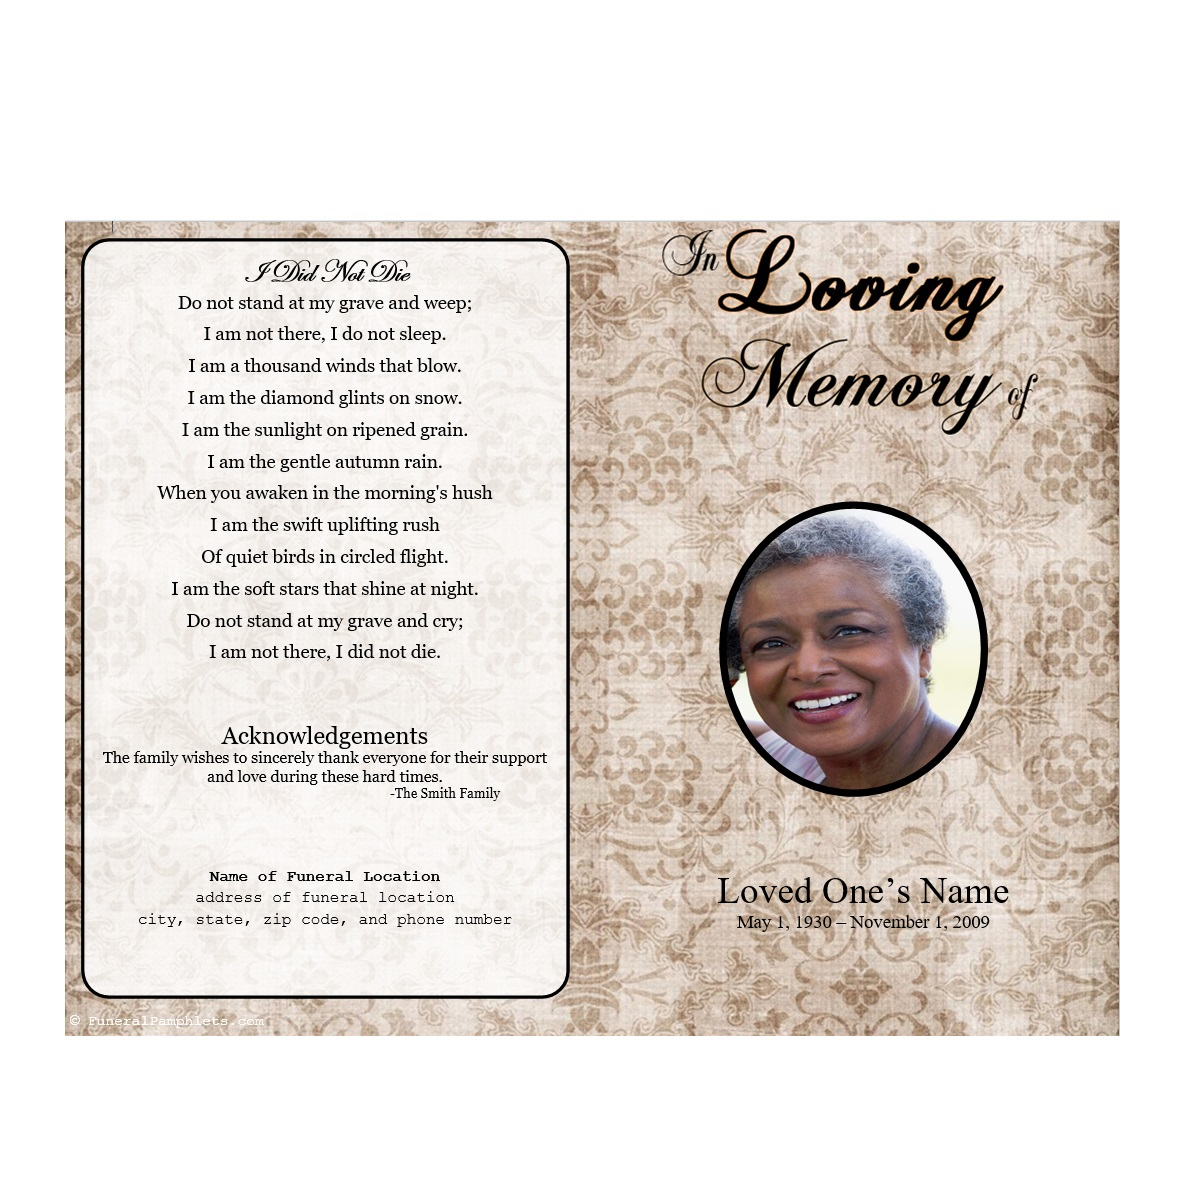 funeral pamphlet template freeradioprovotk